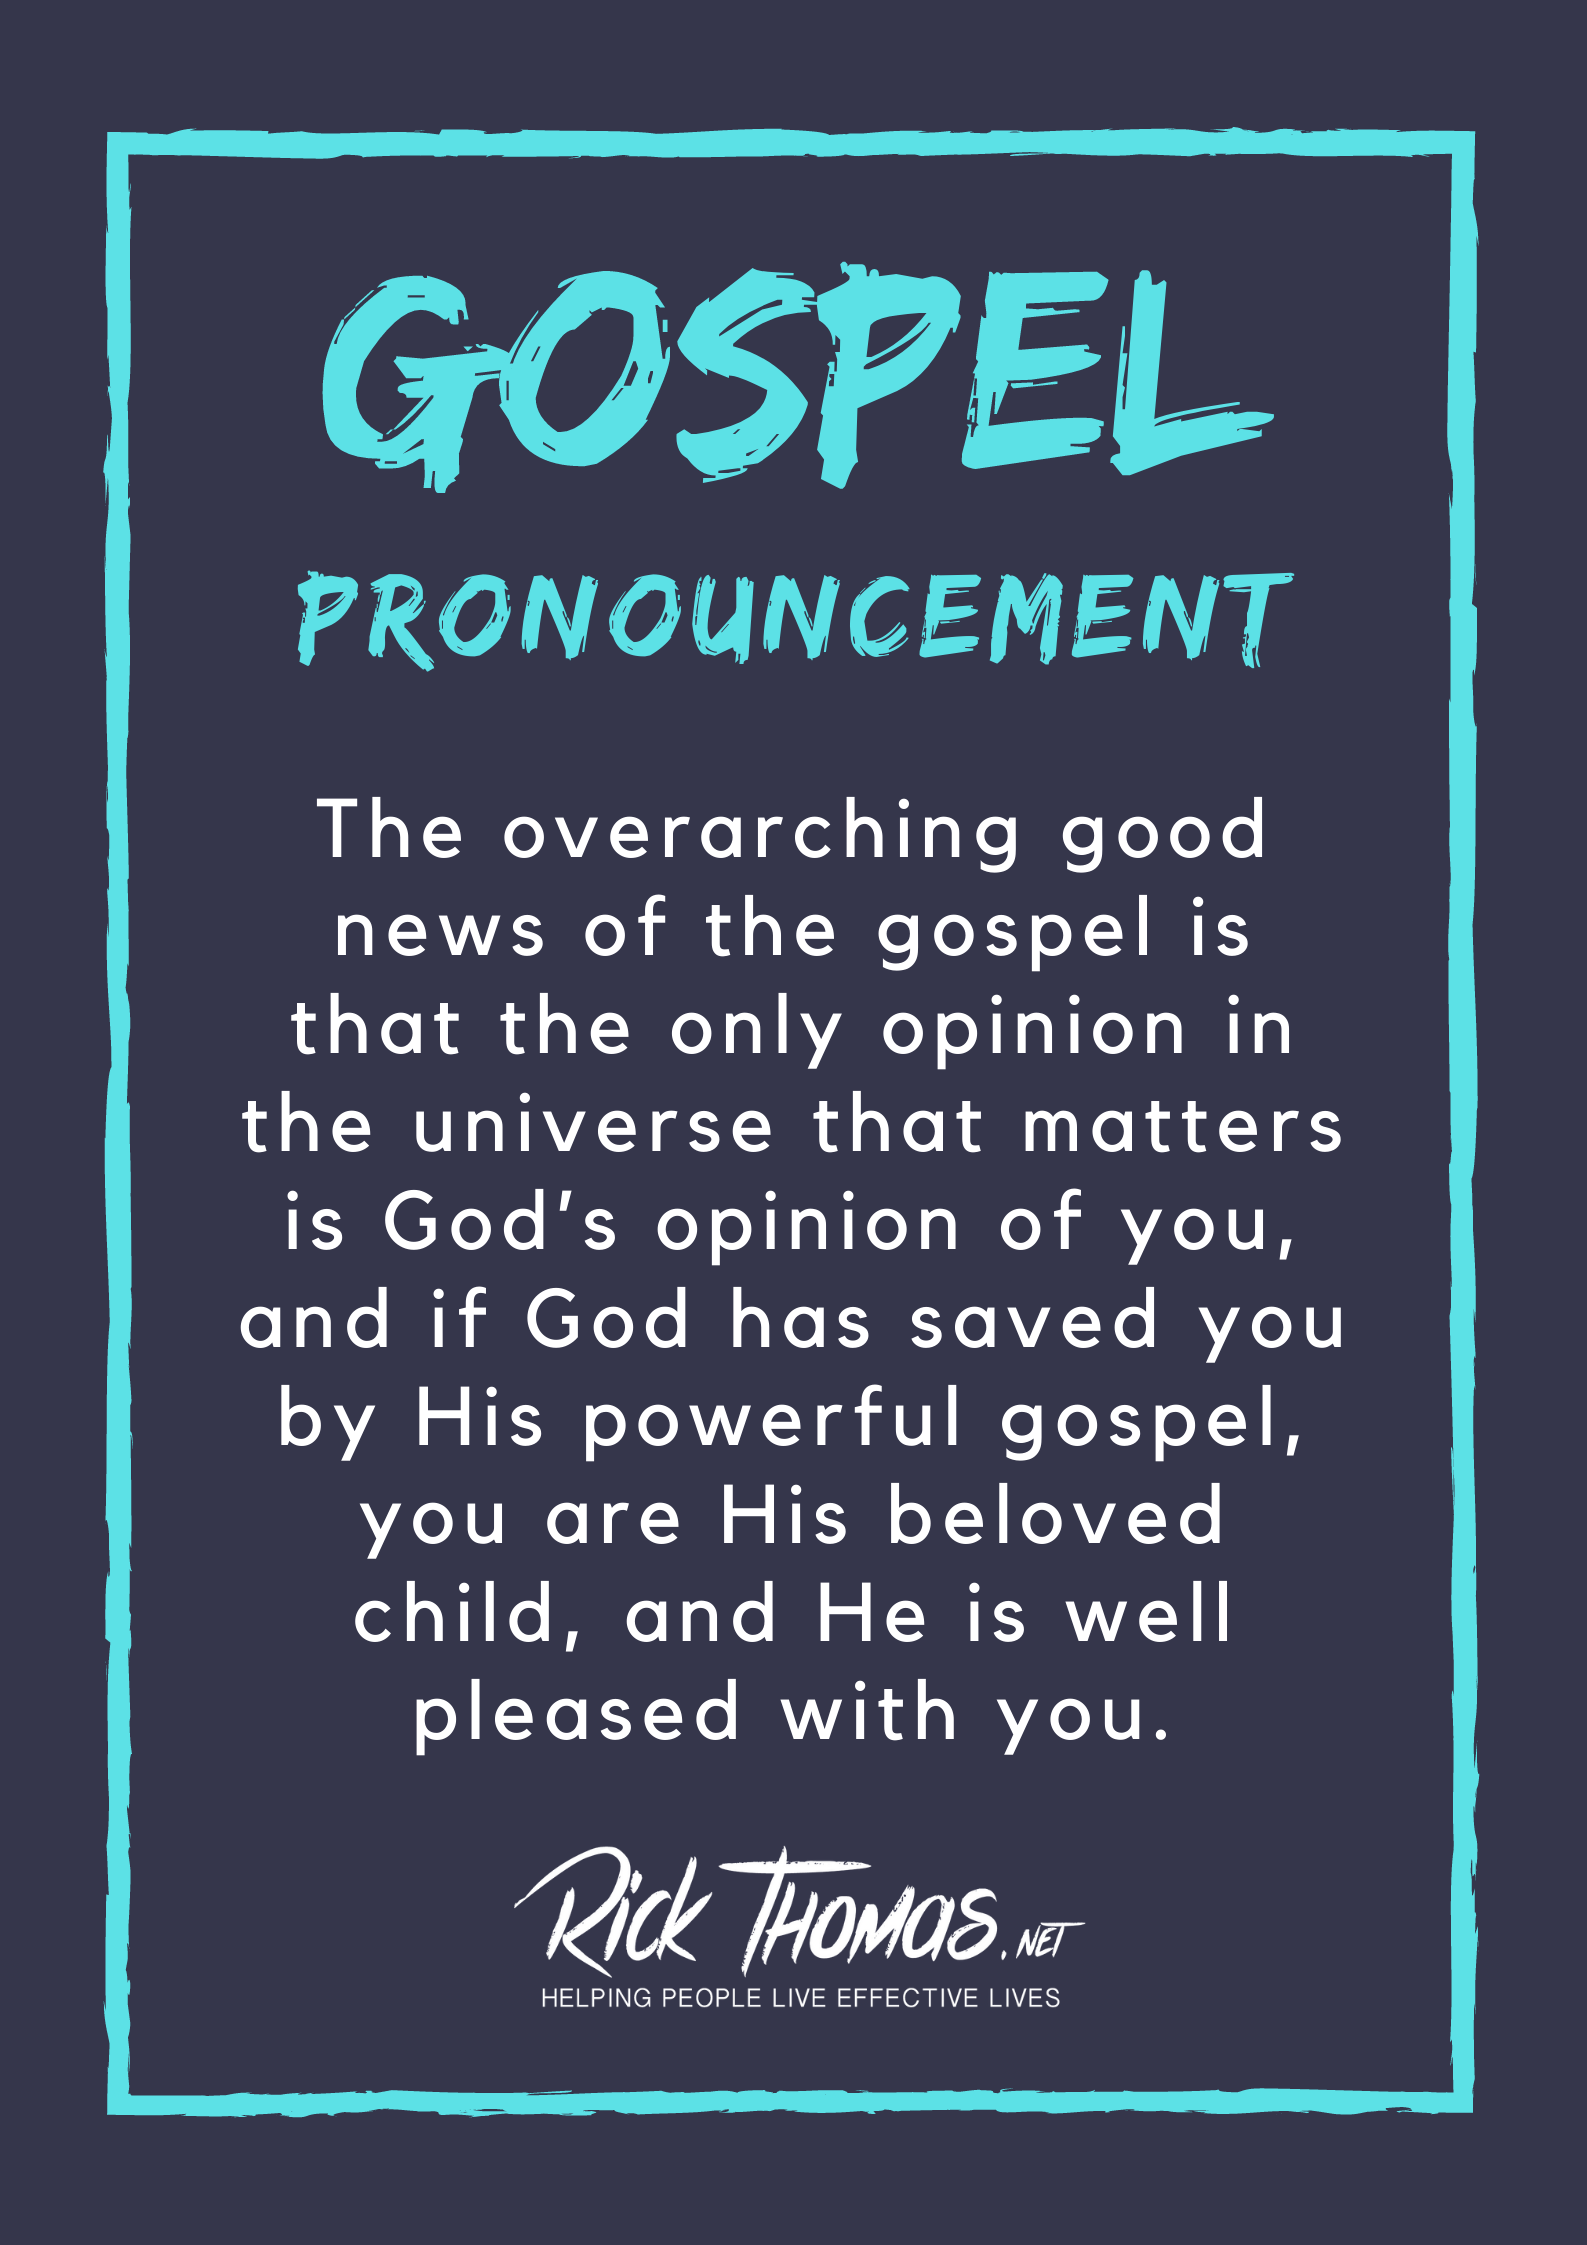 Gospel Pronouncement